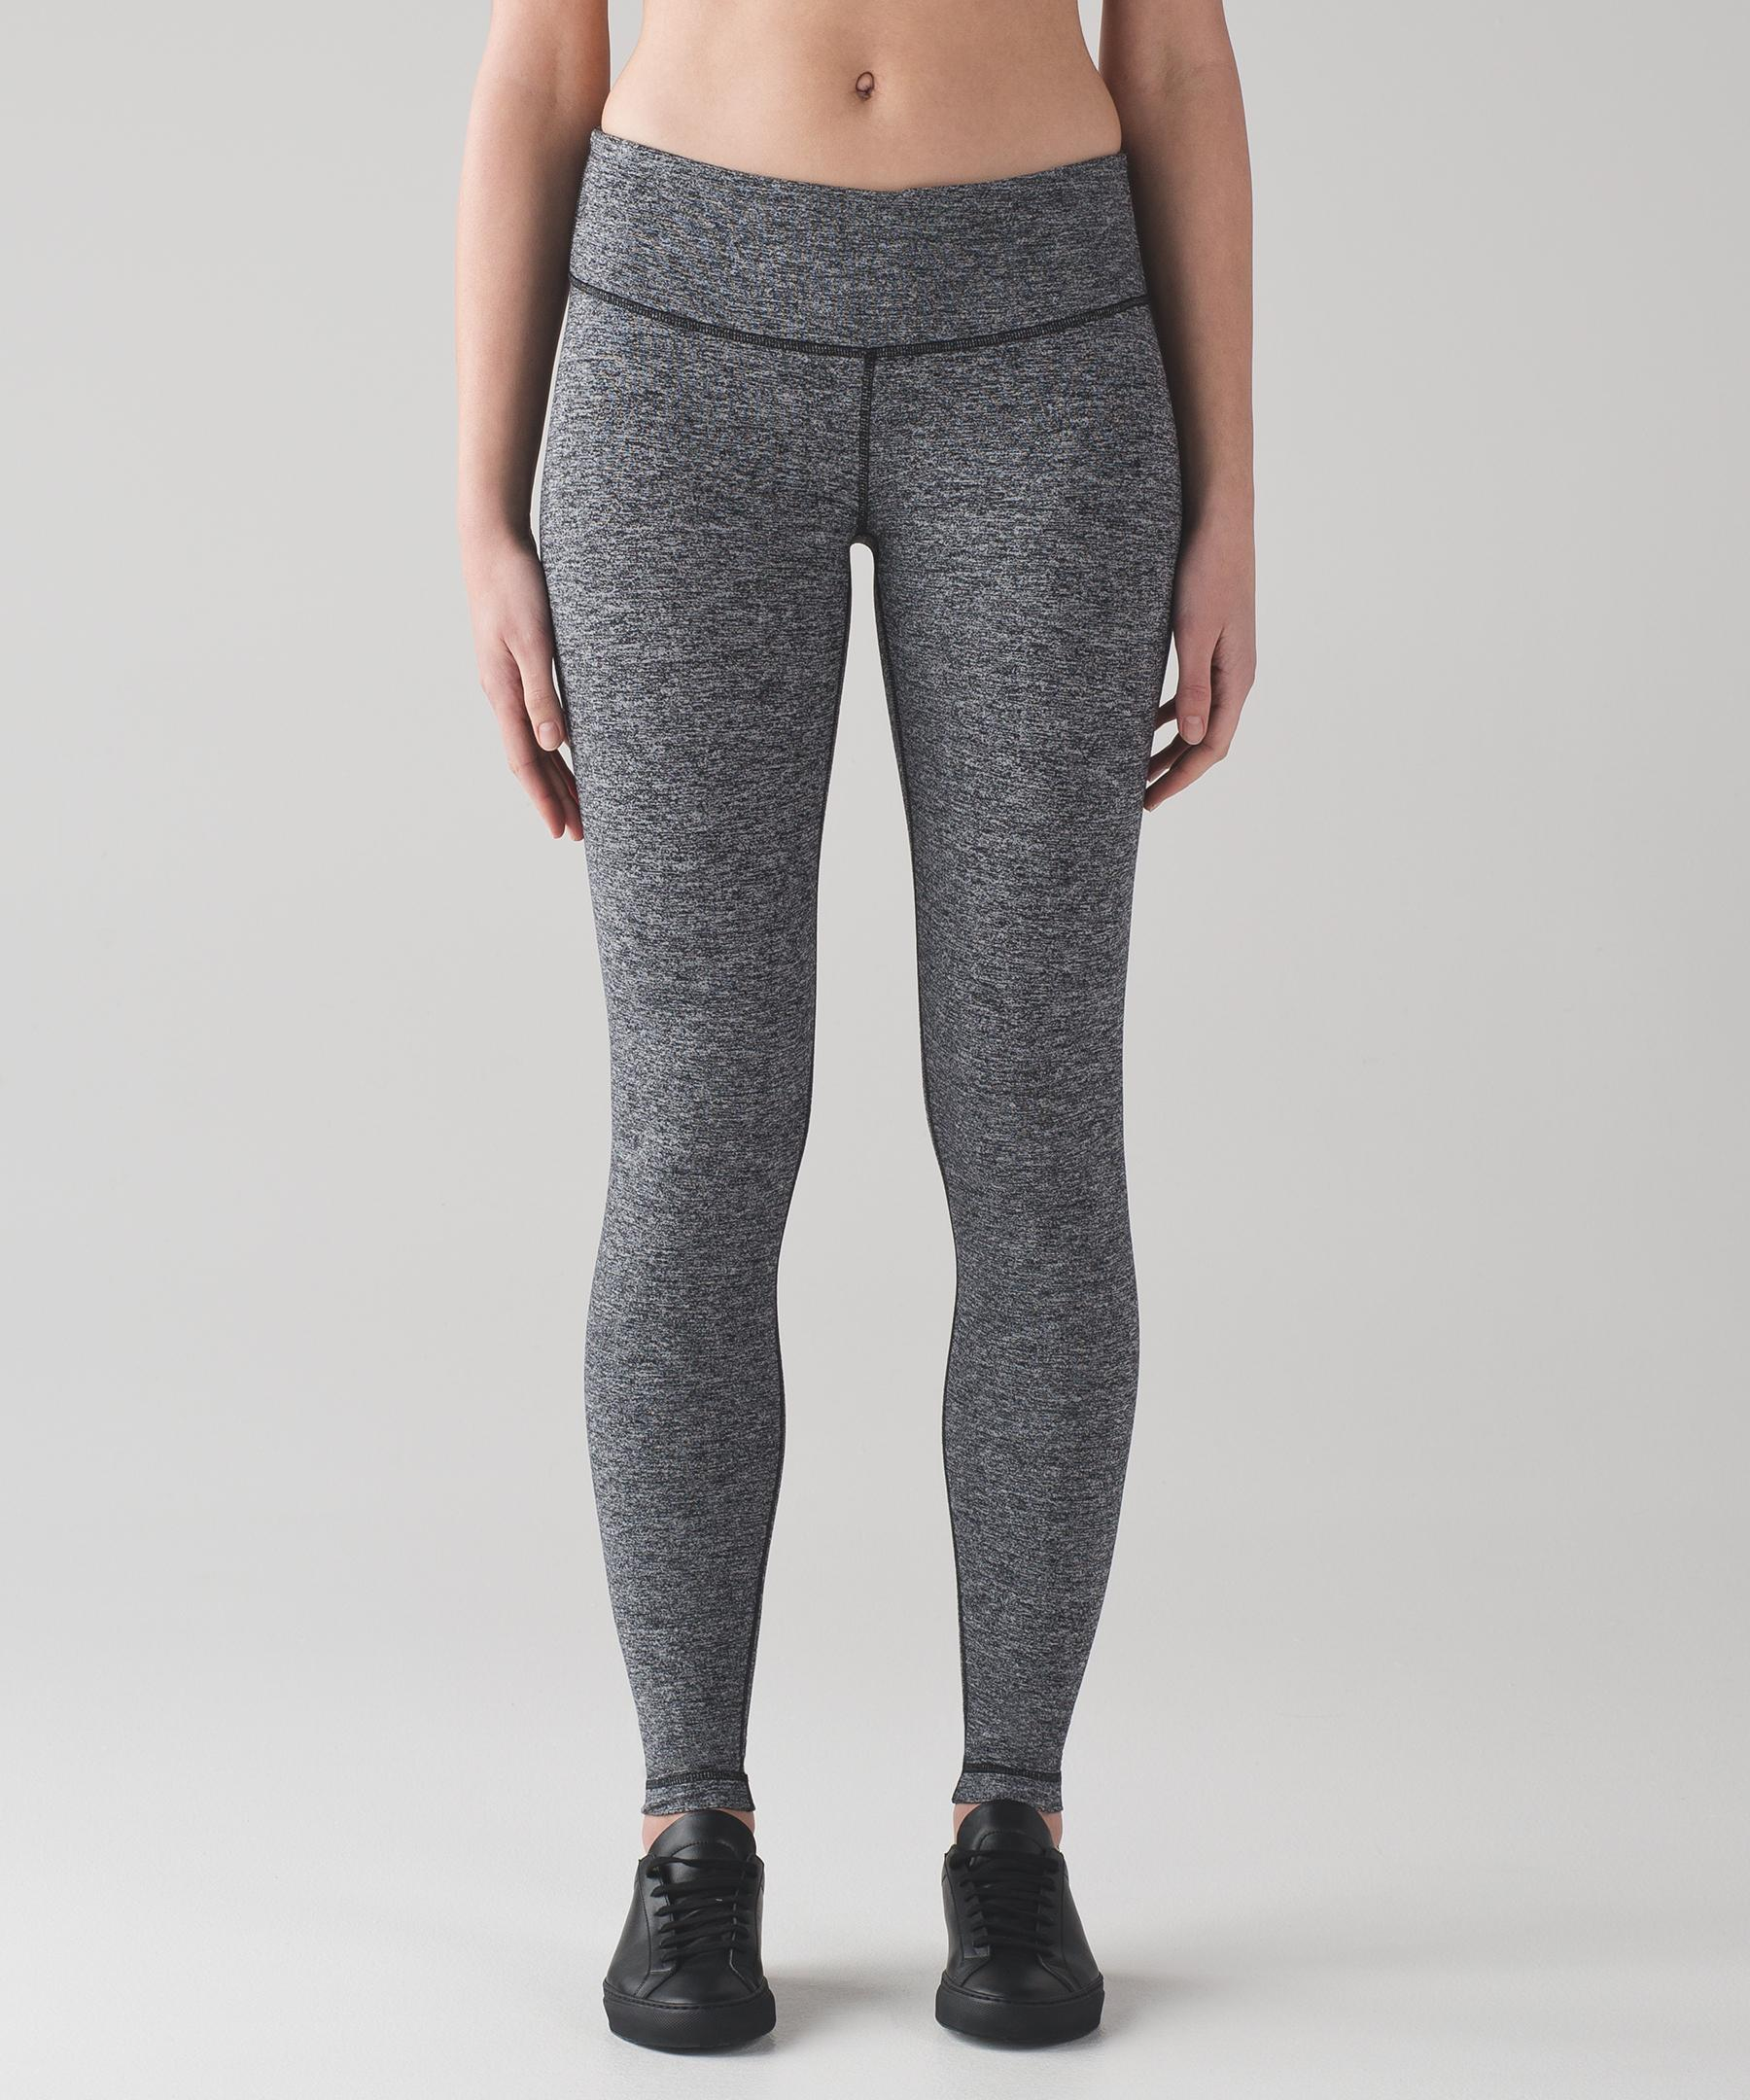 e7a6cf9c96c869 lululemon athletica Wunder Under Low-rise Tight in Black - Lyst